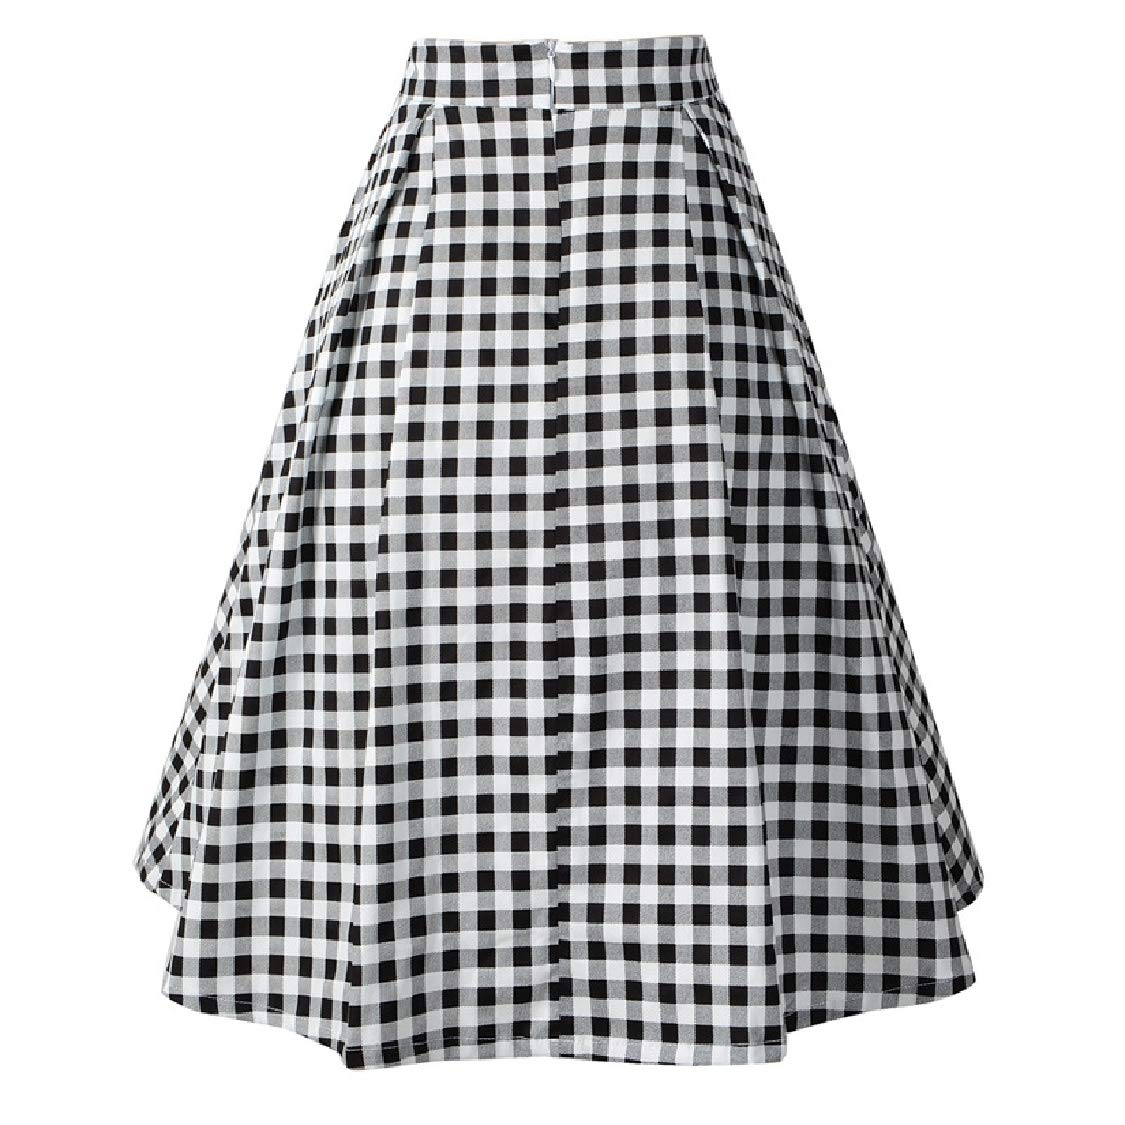 b12c7711a612db WQ&EnergyWomen Womens Pleated Plaid Classic Vintage High Rise Skirt Black  XS: Amazon.in: Clothing & Accessories